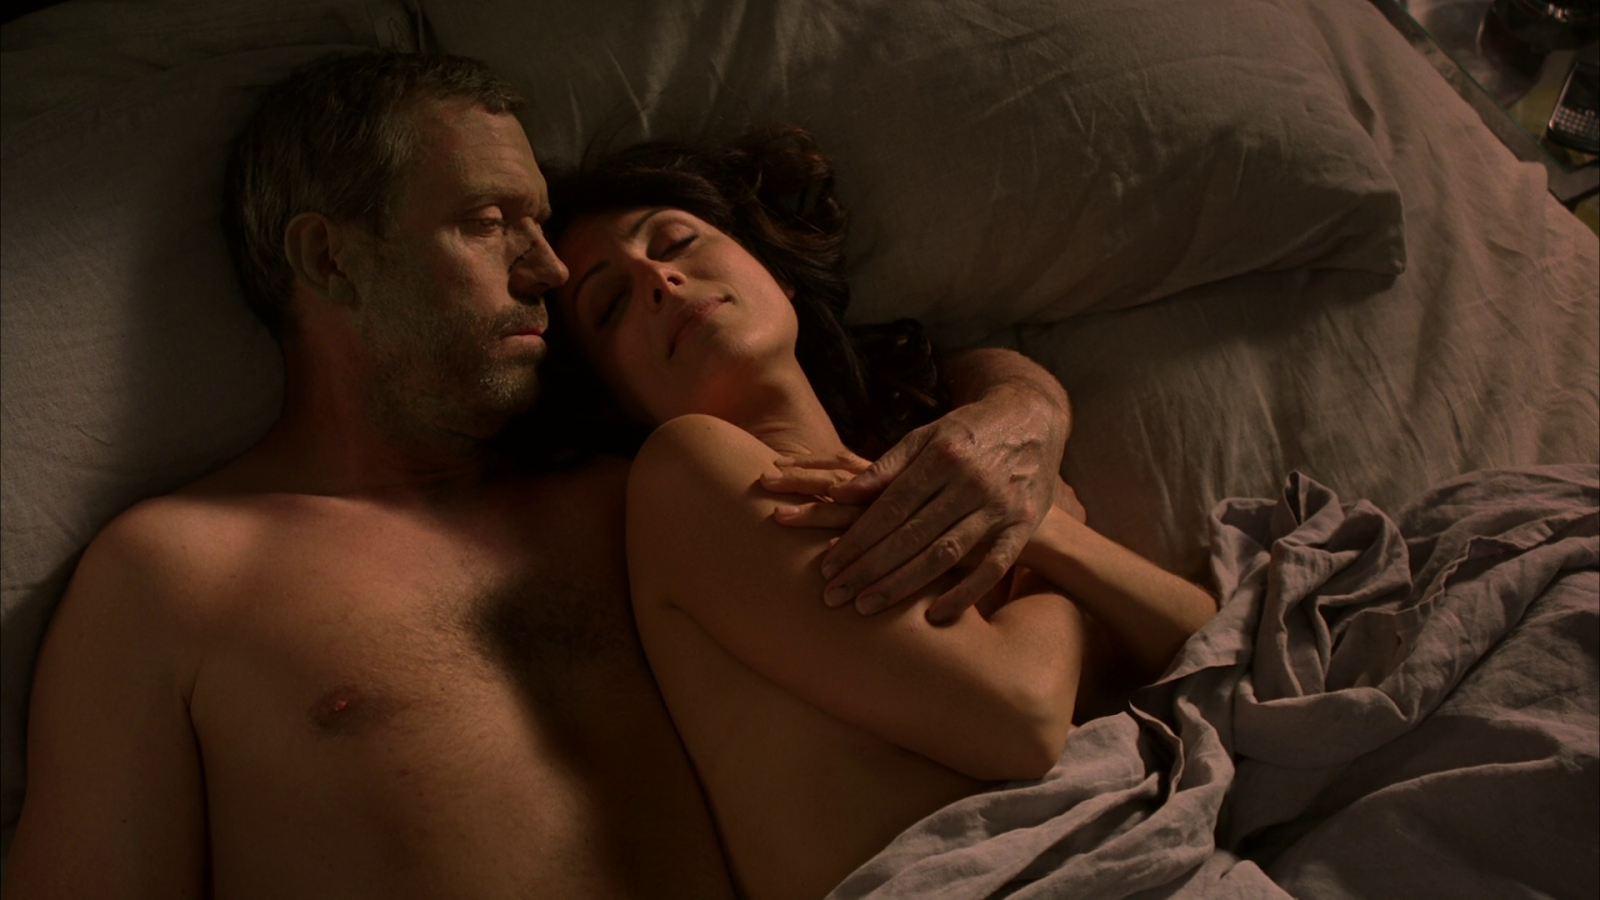 Erotic thrillers streaming on hbo now